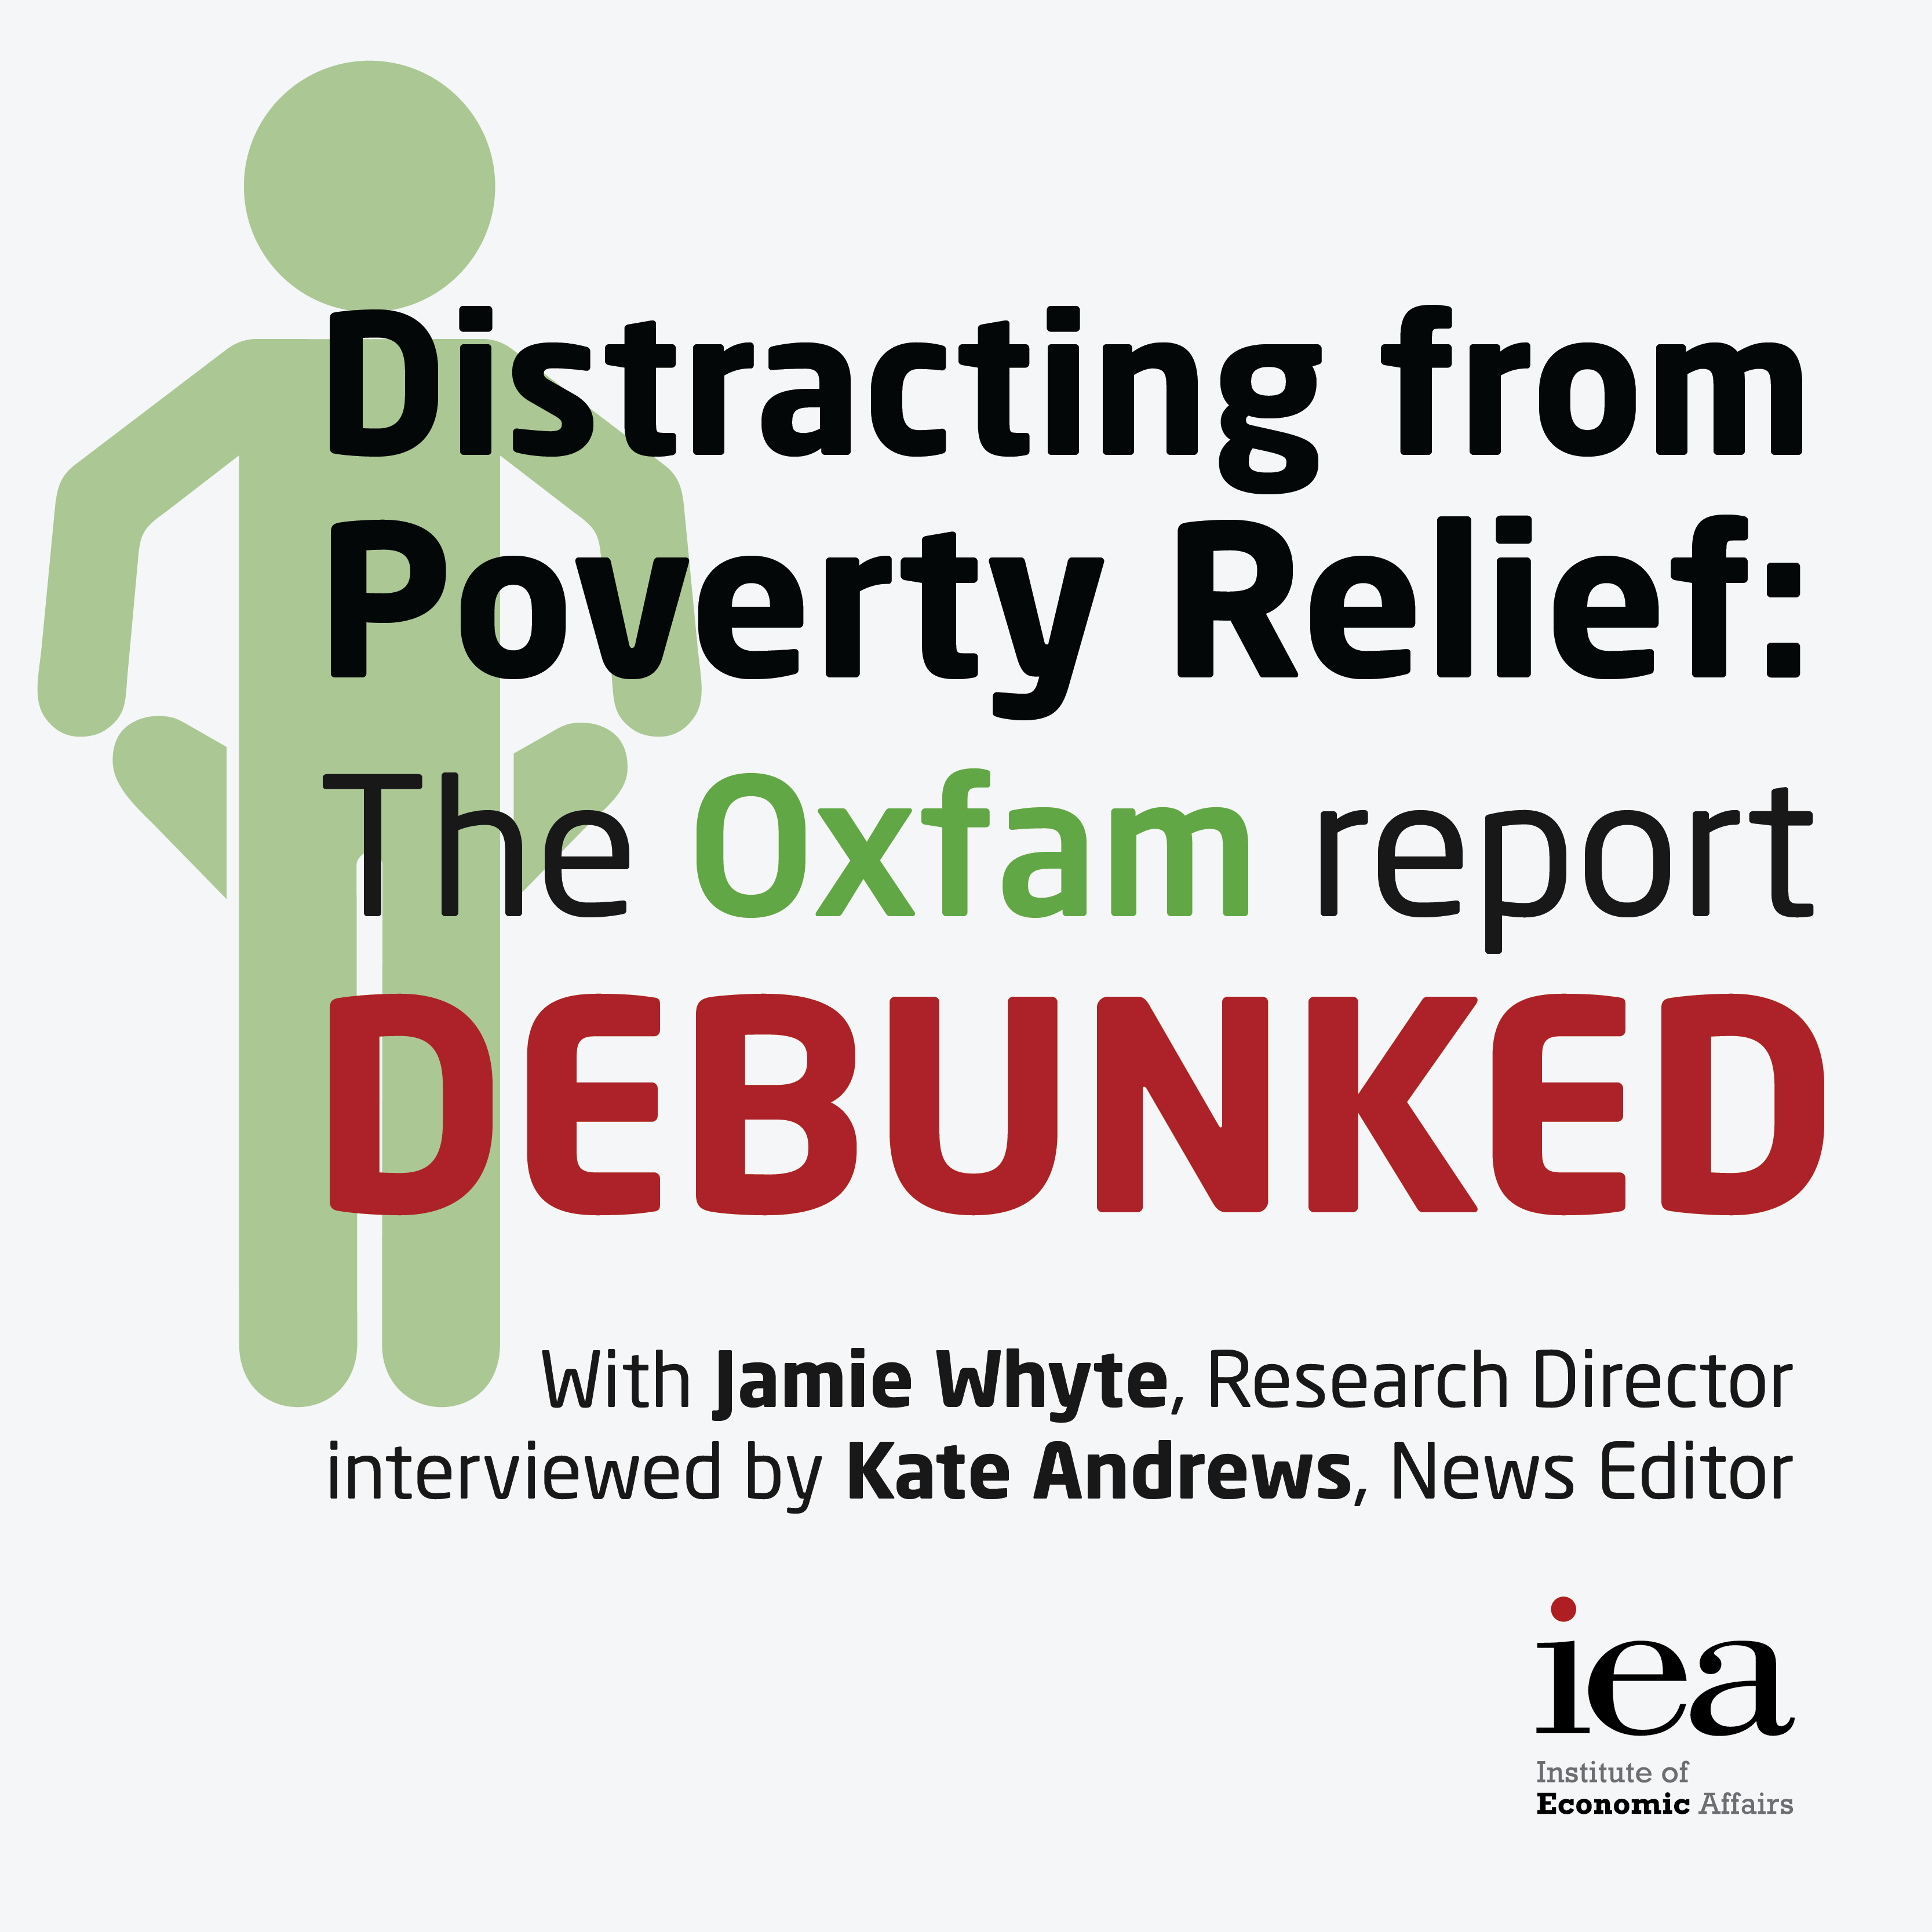 Distracting from Poverty Relief: The Oxfam report debunked